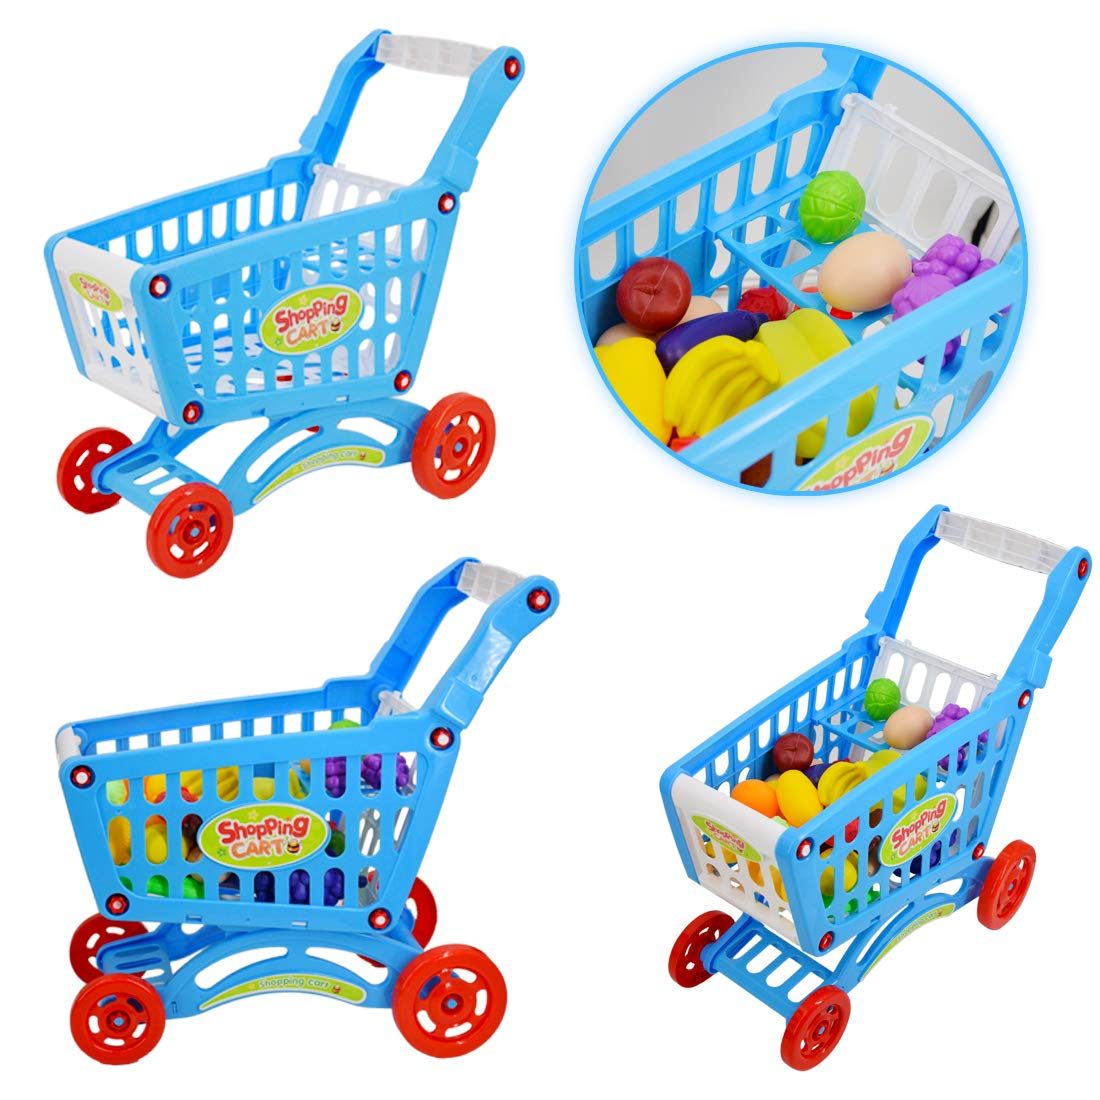 d77163ebc66e deAO Kids Supermarket Stall Toy Shop and Shopping Trolley Car with Play Food  fruit Vegetables Grocery Accessories: Amazon.co.uk: Toys & Games